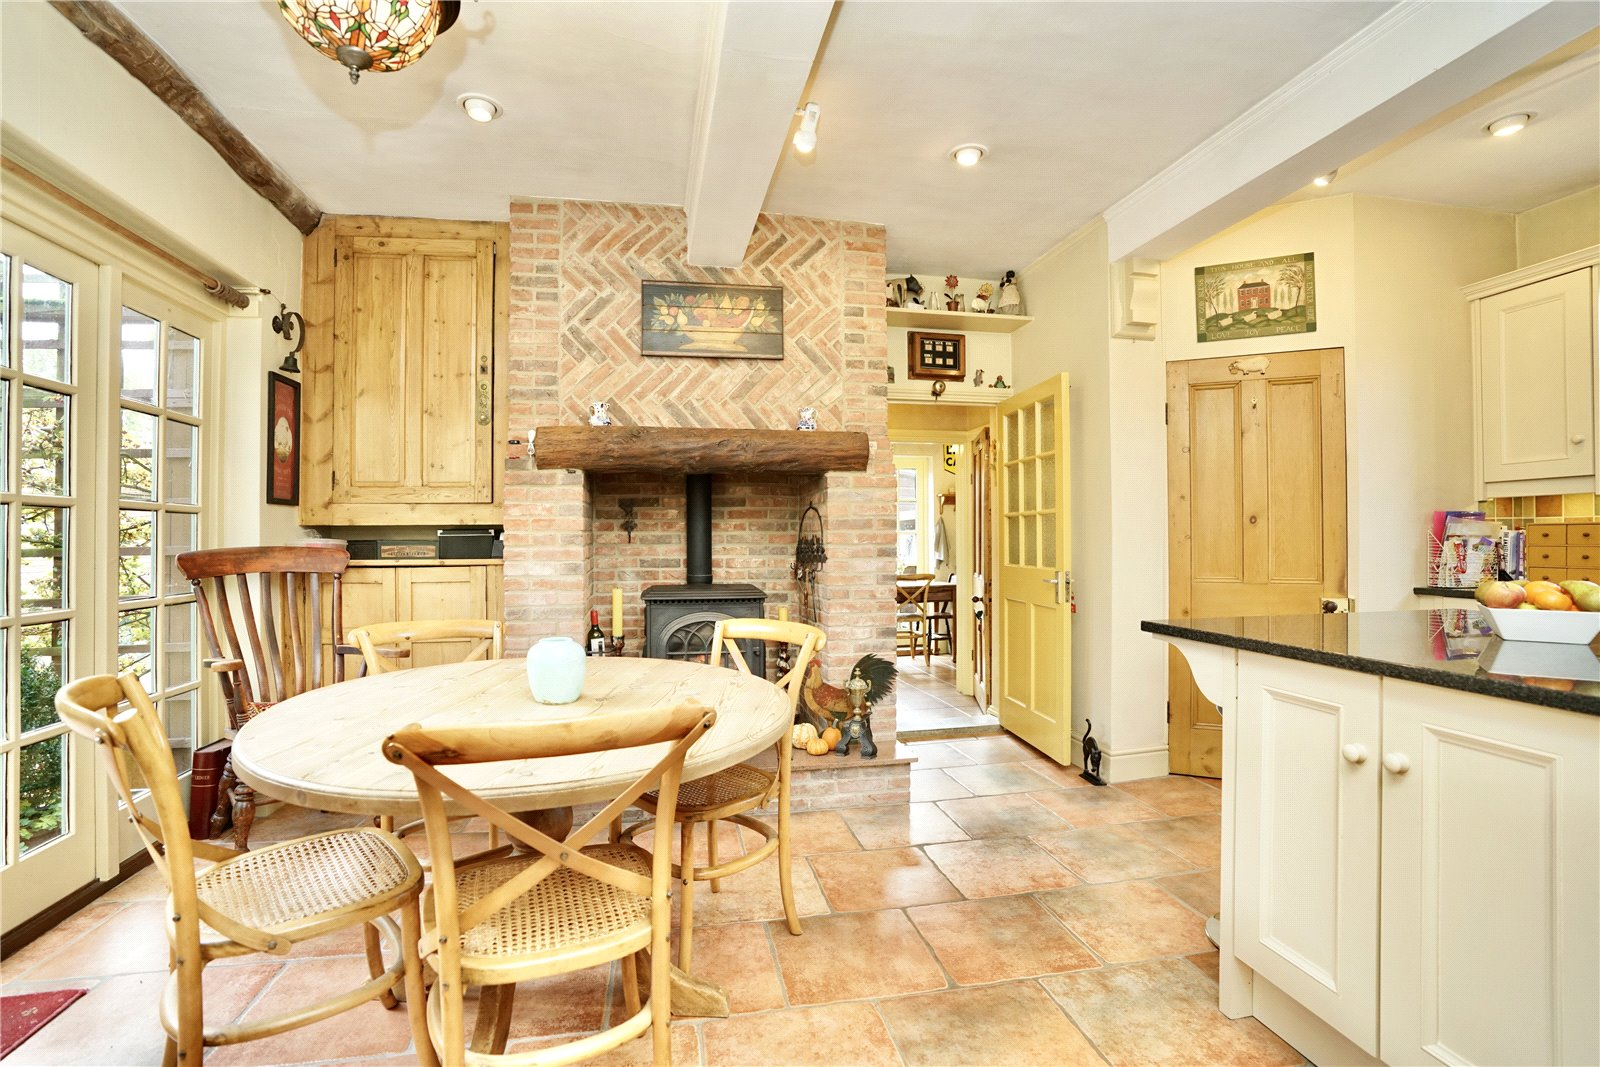 4 bed house for sale in Great Staughton 3